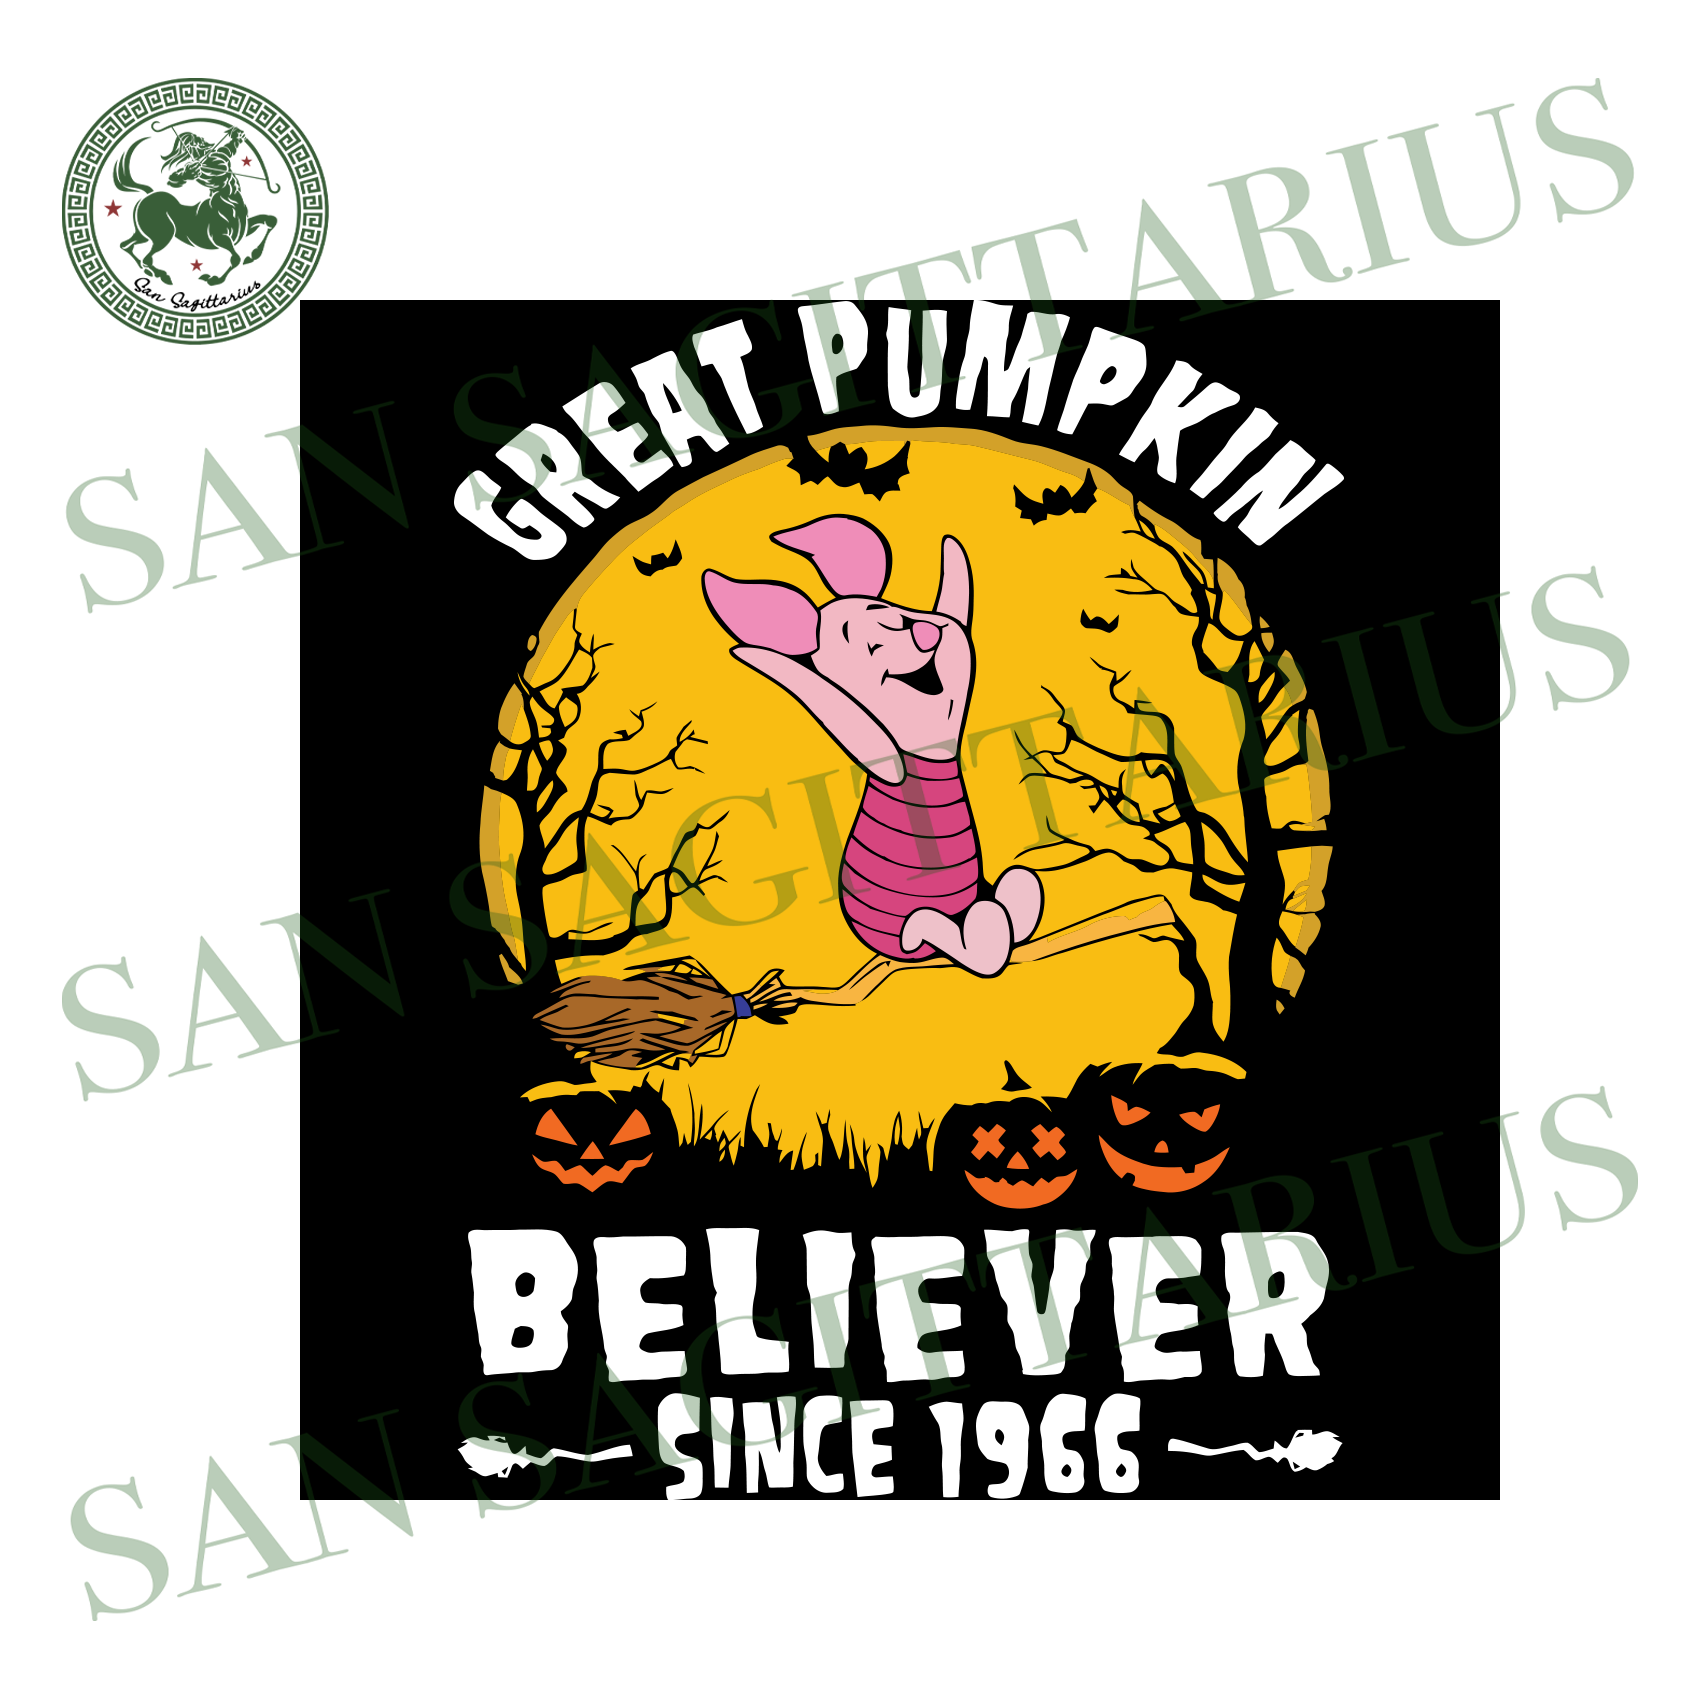 Pig Great Pumpkin Believer Since 1966, Halloween Svg, Happy Halloween, Halloween Gift, Halloween Day, Trick Or Treat Halloween, Pig Svg, Cute Pig, Pumpkin Svg, Love Pig, Poor Bear Cartoon Svg